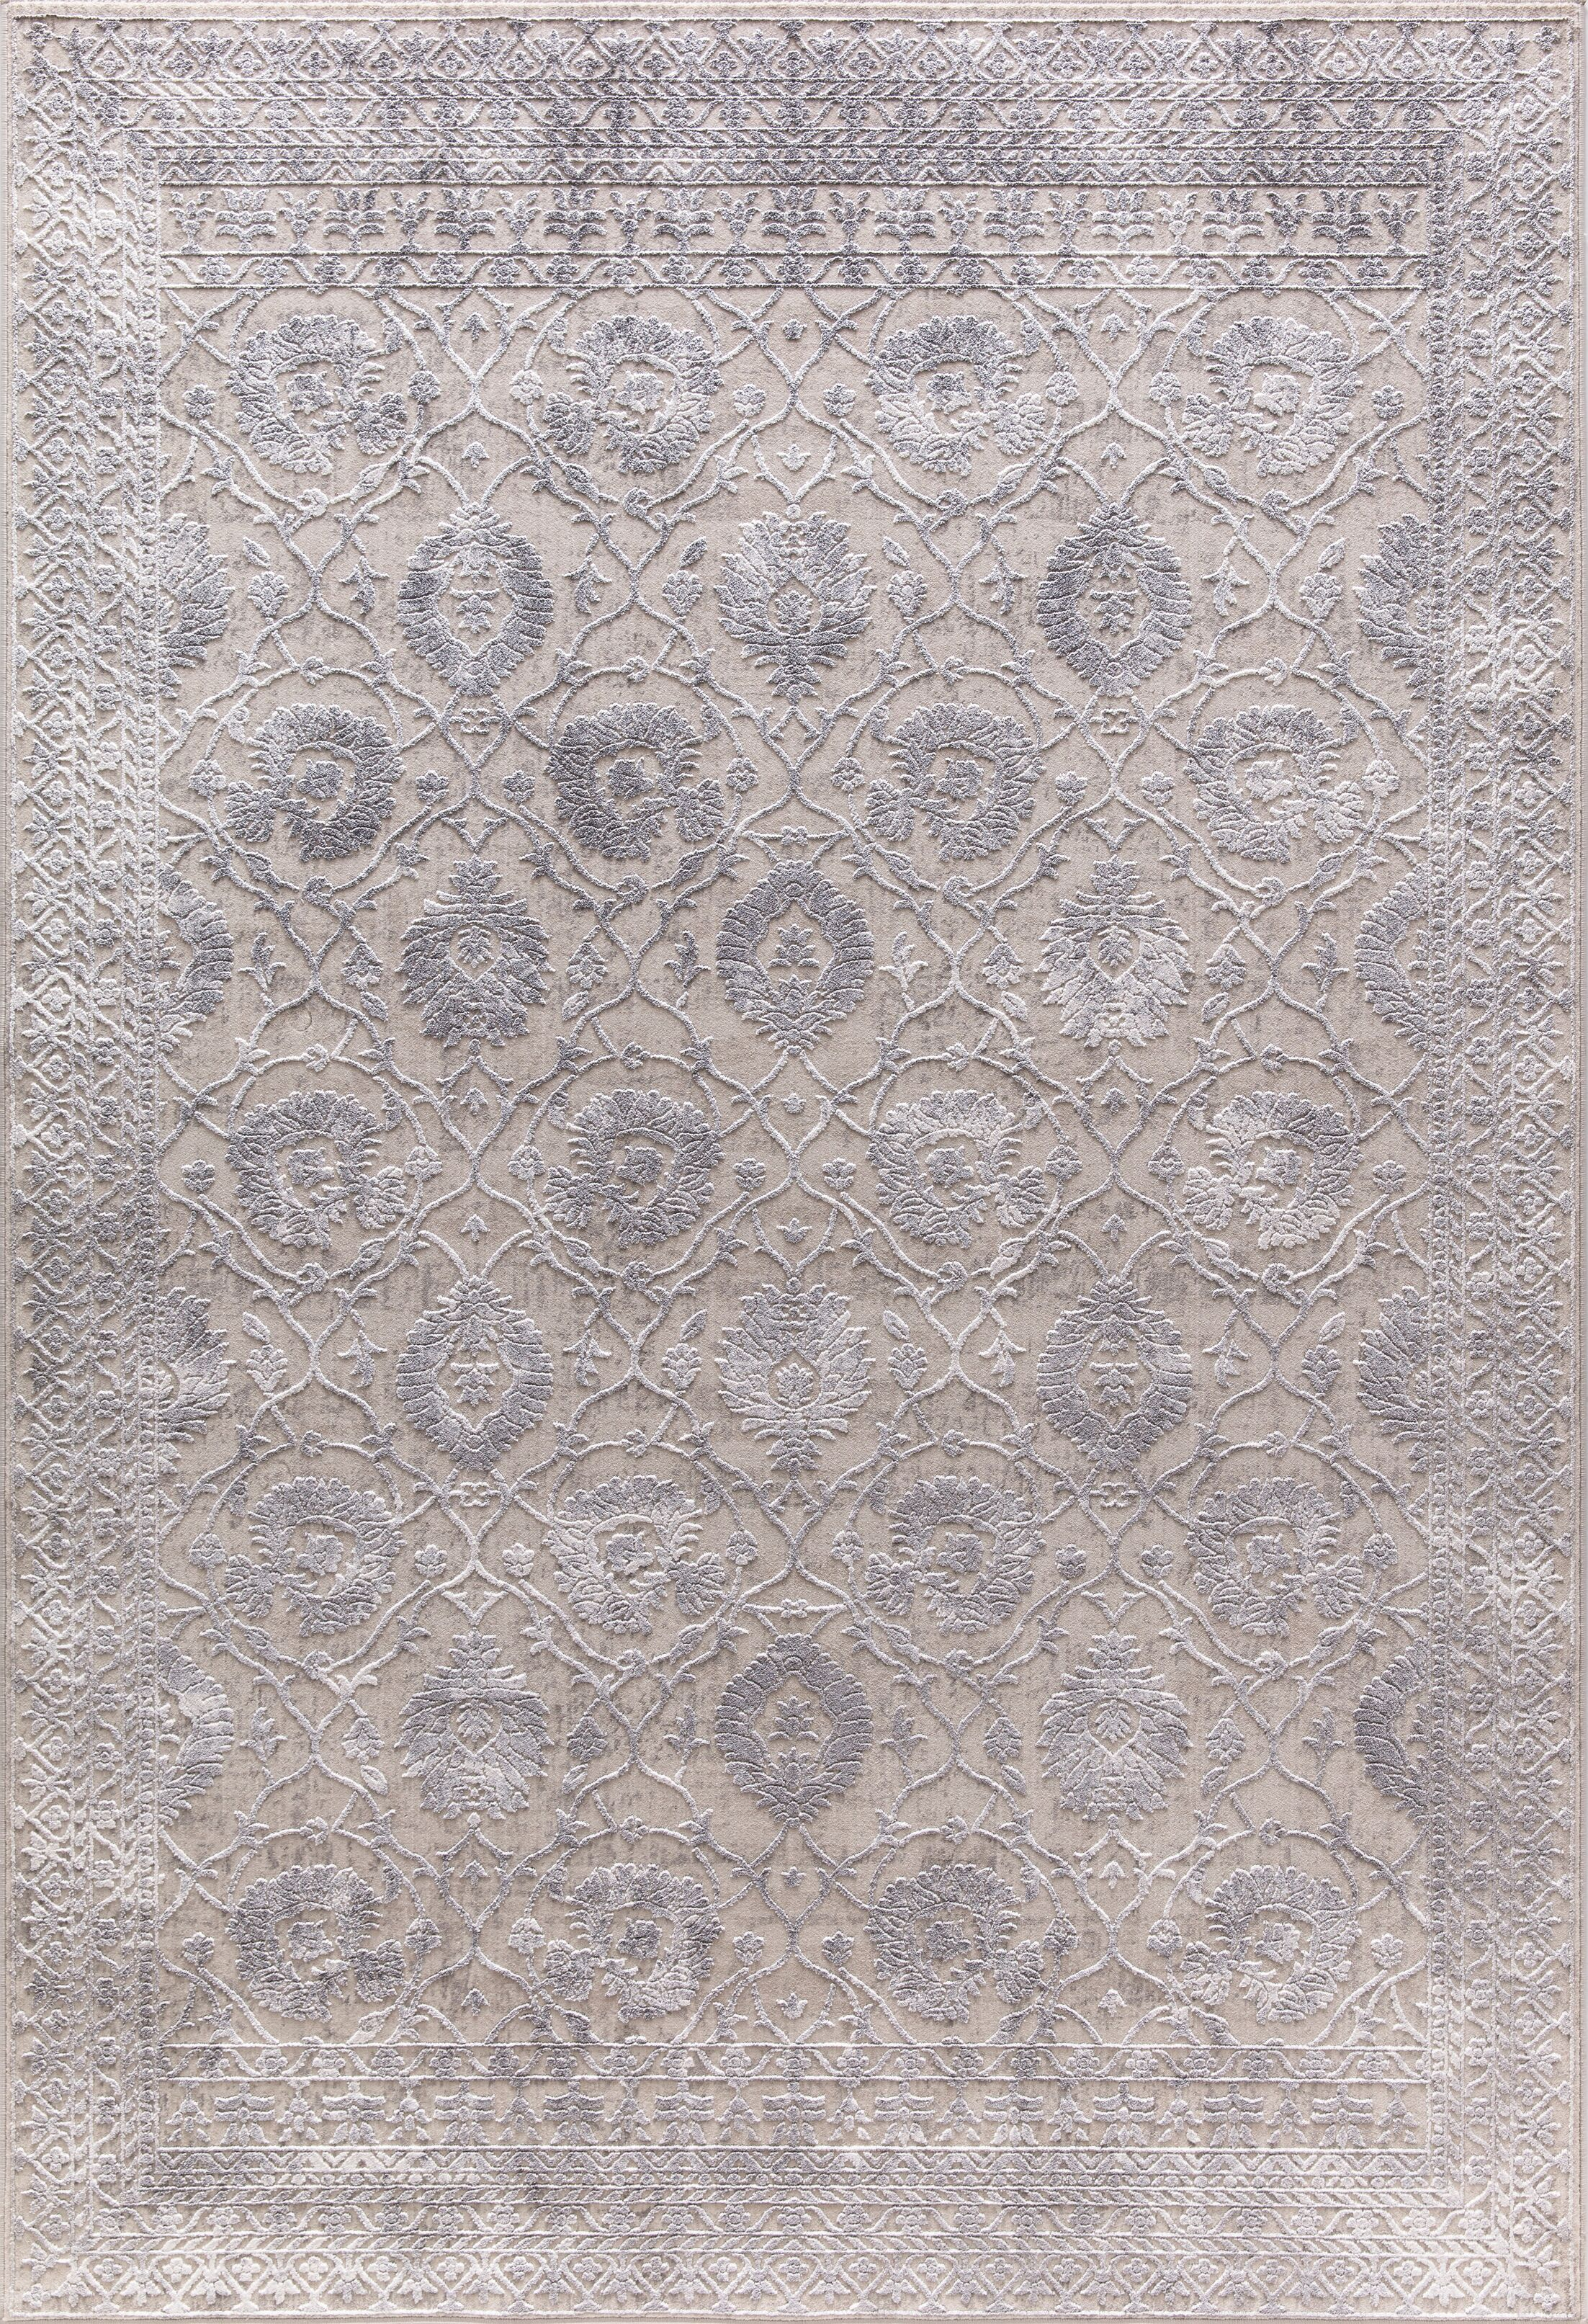 Rearick Gray/Silver Area Rug Rug Size: Rectangle 3'11